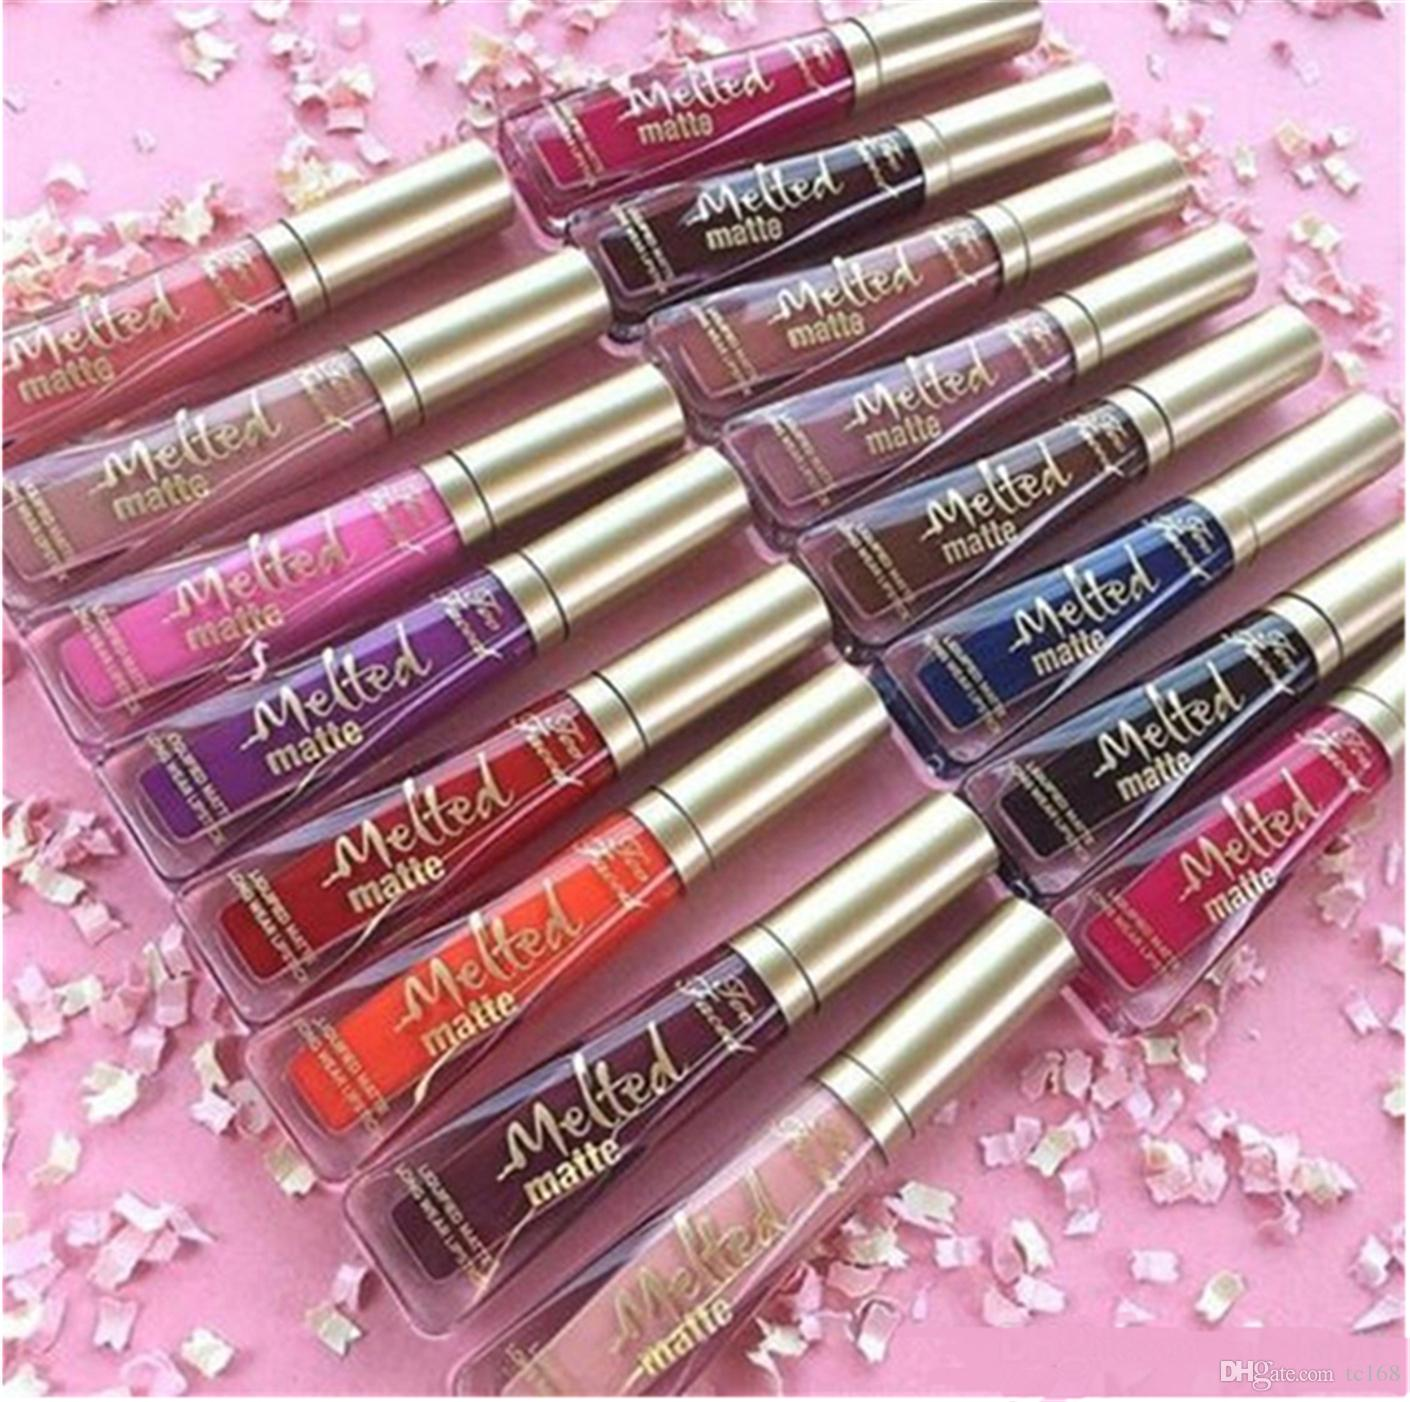 when i wear lipstick vs lip gloss Emphatically, lipstick gloss has such limited use and decreases wear time i usually only use it for editorial work and very rarely irl and never on myself for young teens, there are such pretty sheer lipstick options.